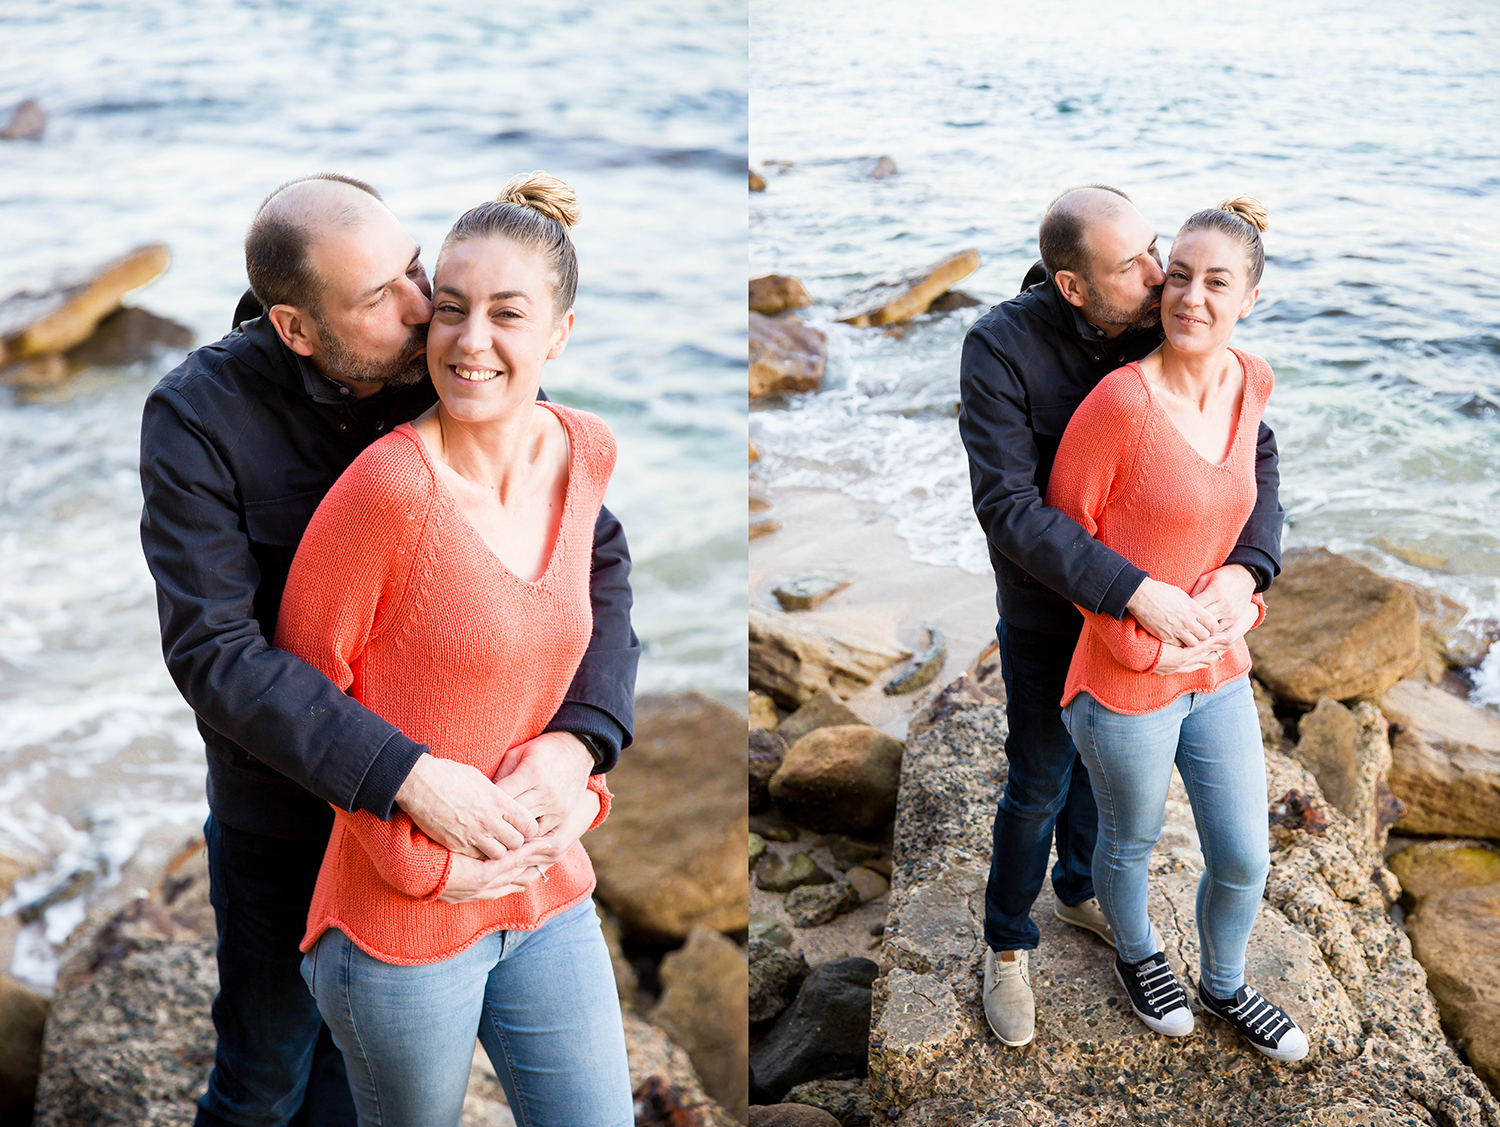 Sydney Pre-Wedding Photo Session - Shelly Beach Manly - Jennifer Lam Photography (4).jpg